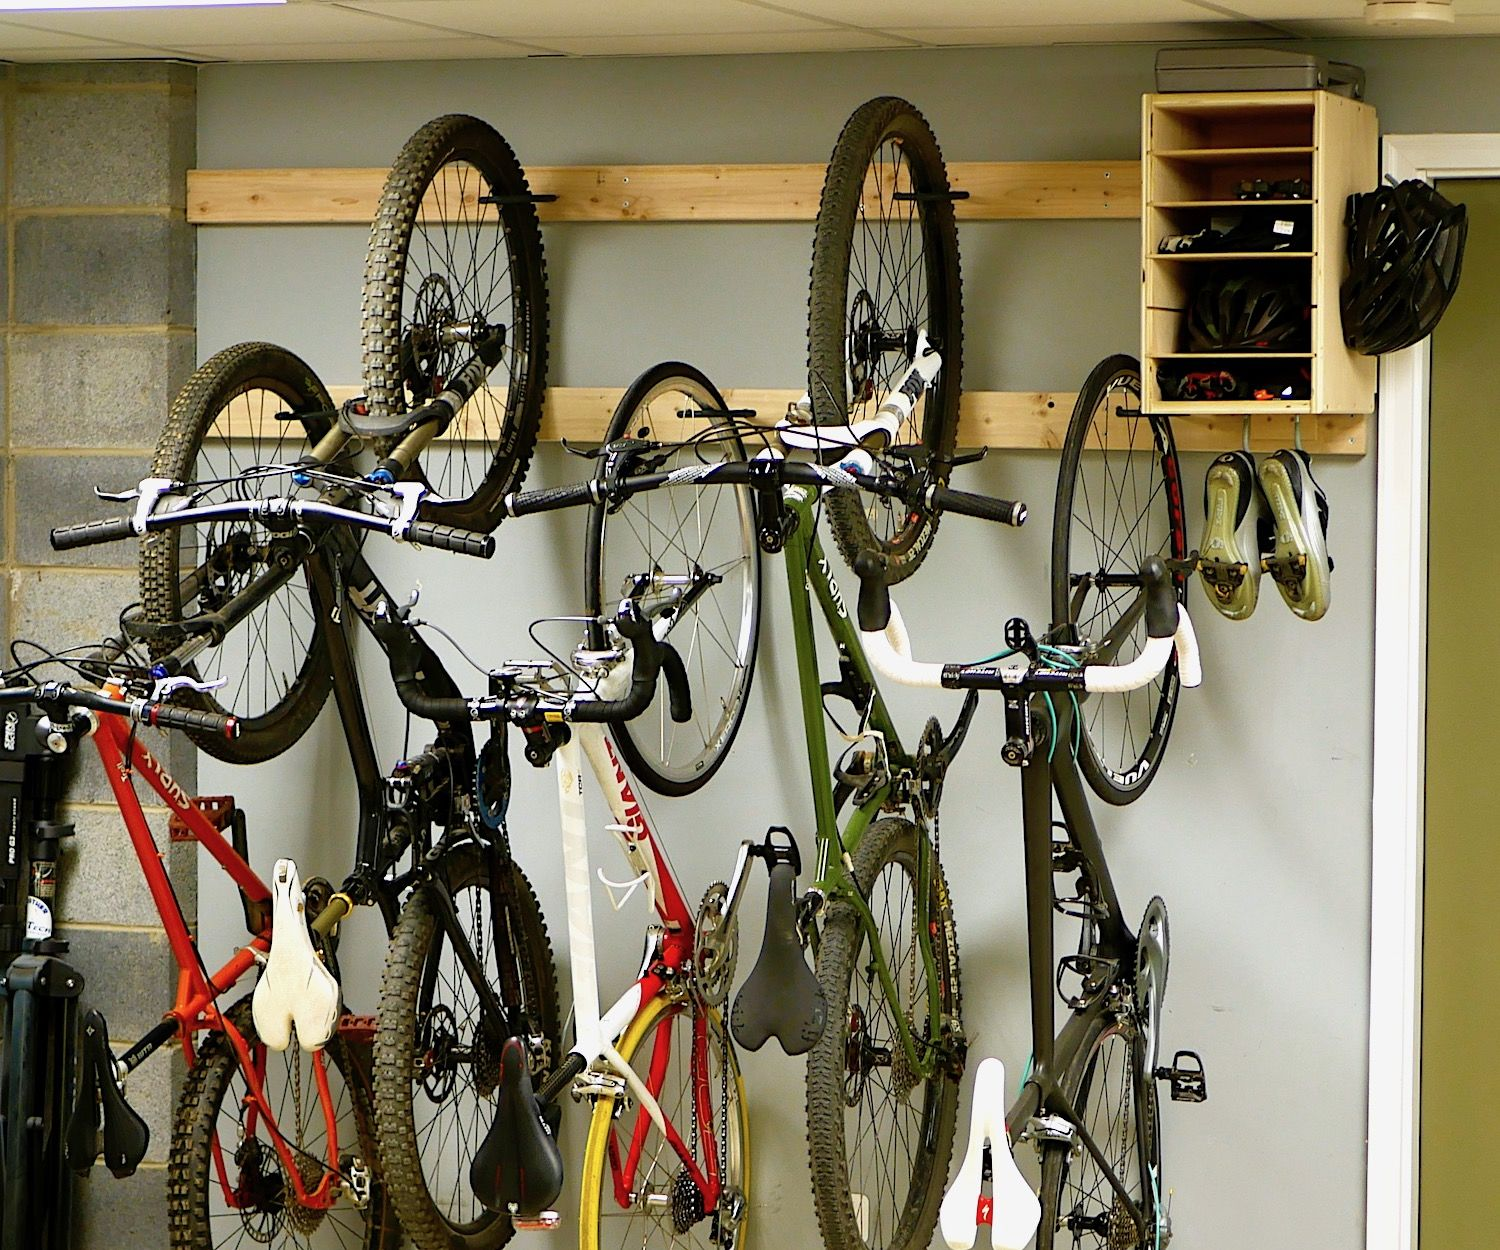 Garage Journal Bike Storage Diy Bike Rack For 20 Bike Storage Stand Cabinet For Garage